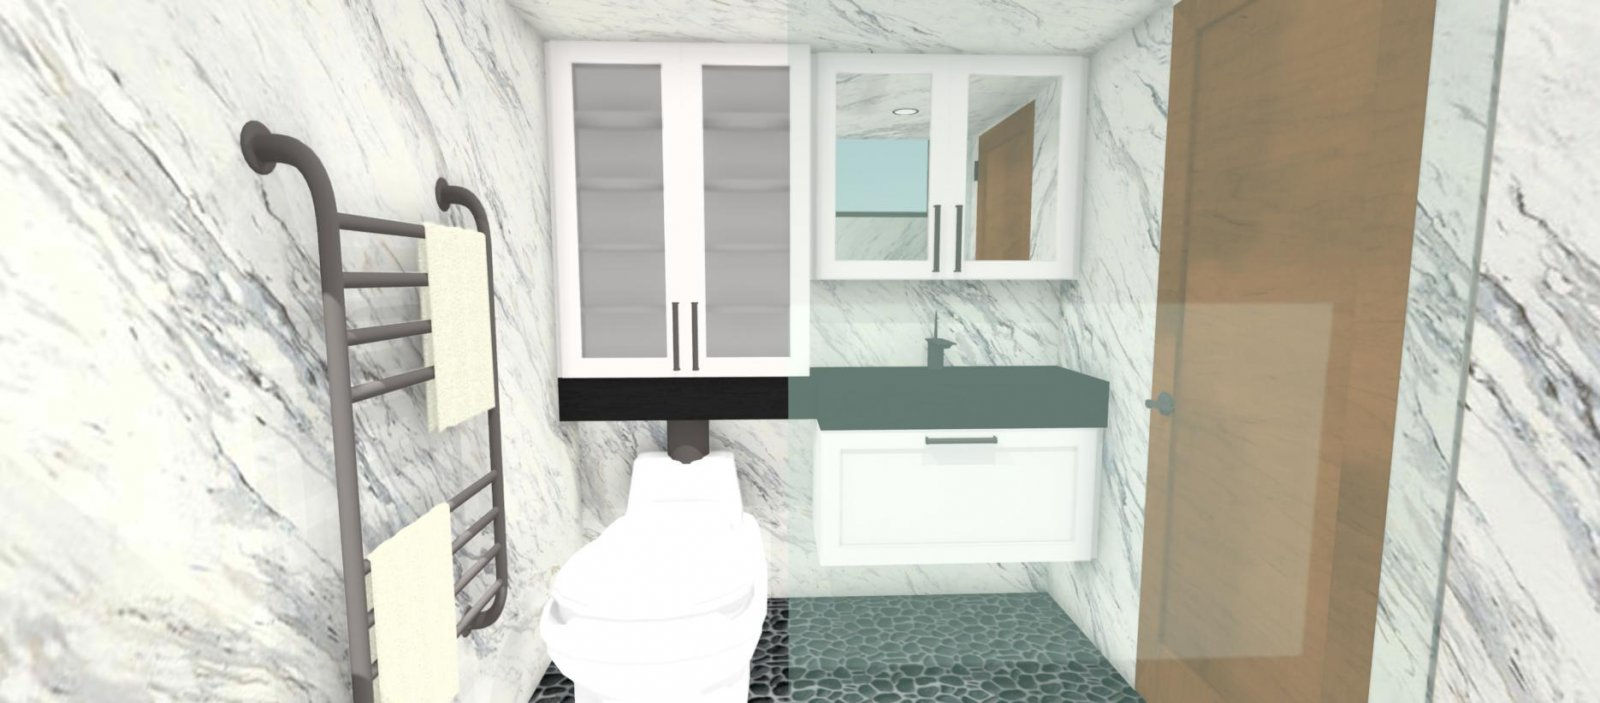 Bathroom with incinerator toilet